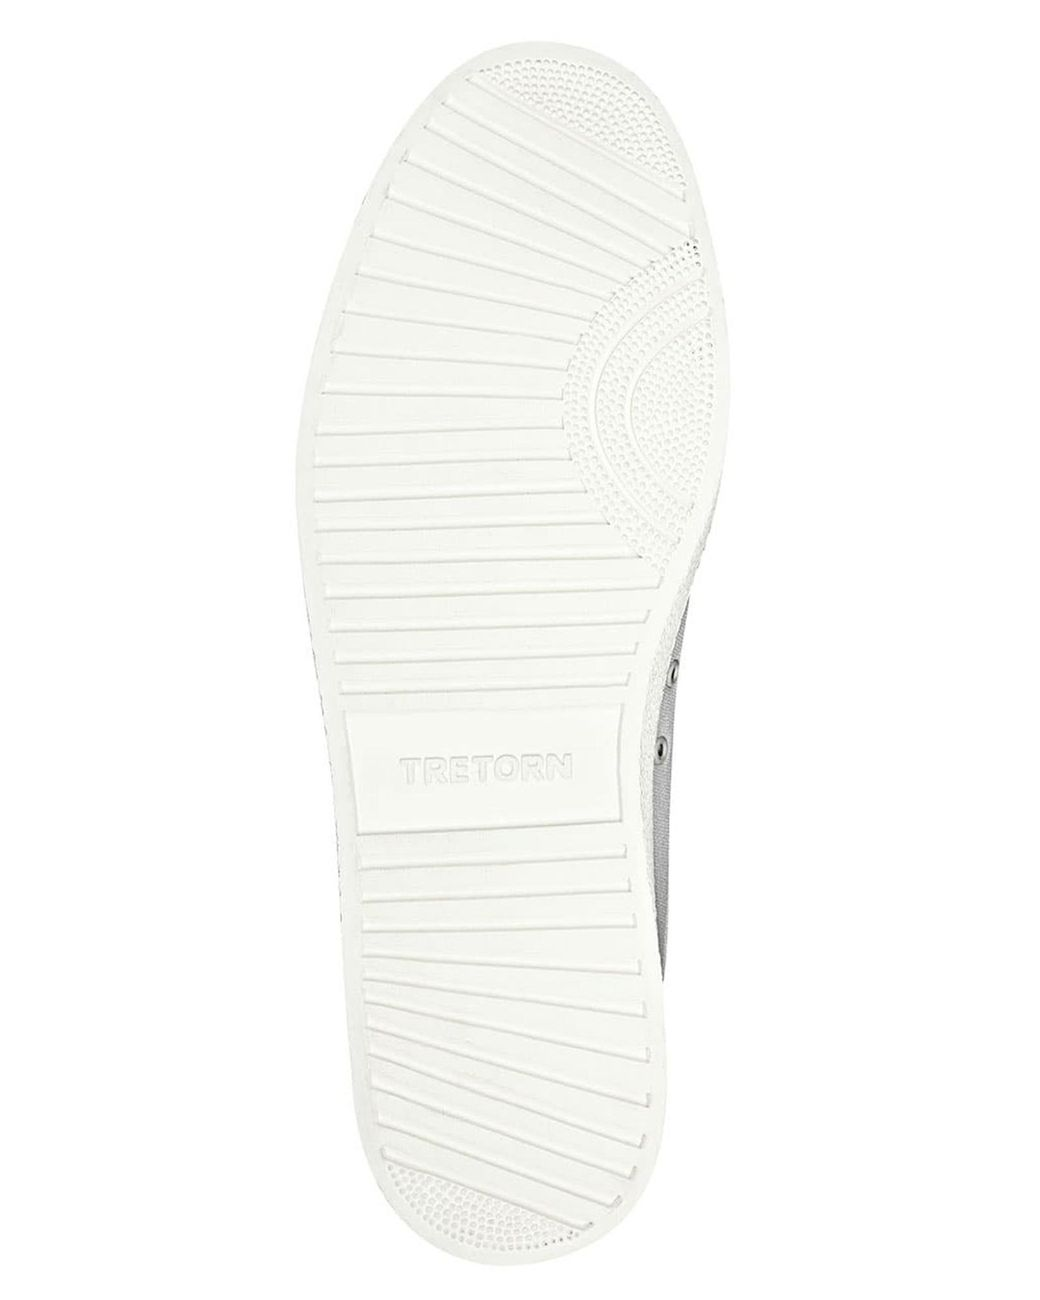 Tretorn Canvas M nylitep in Ivory (White) for Men Save 1